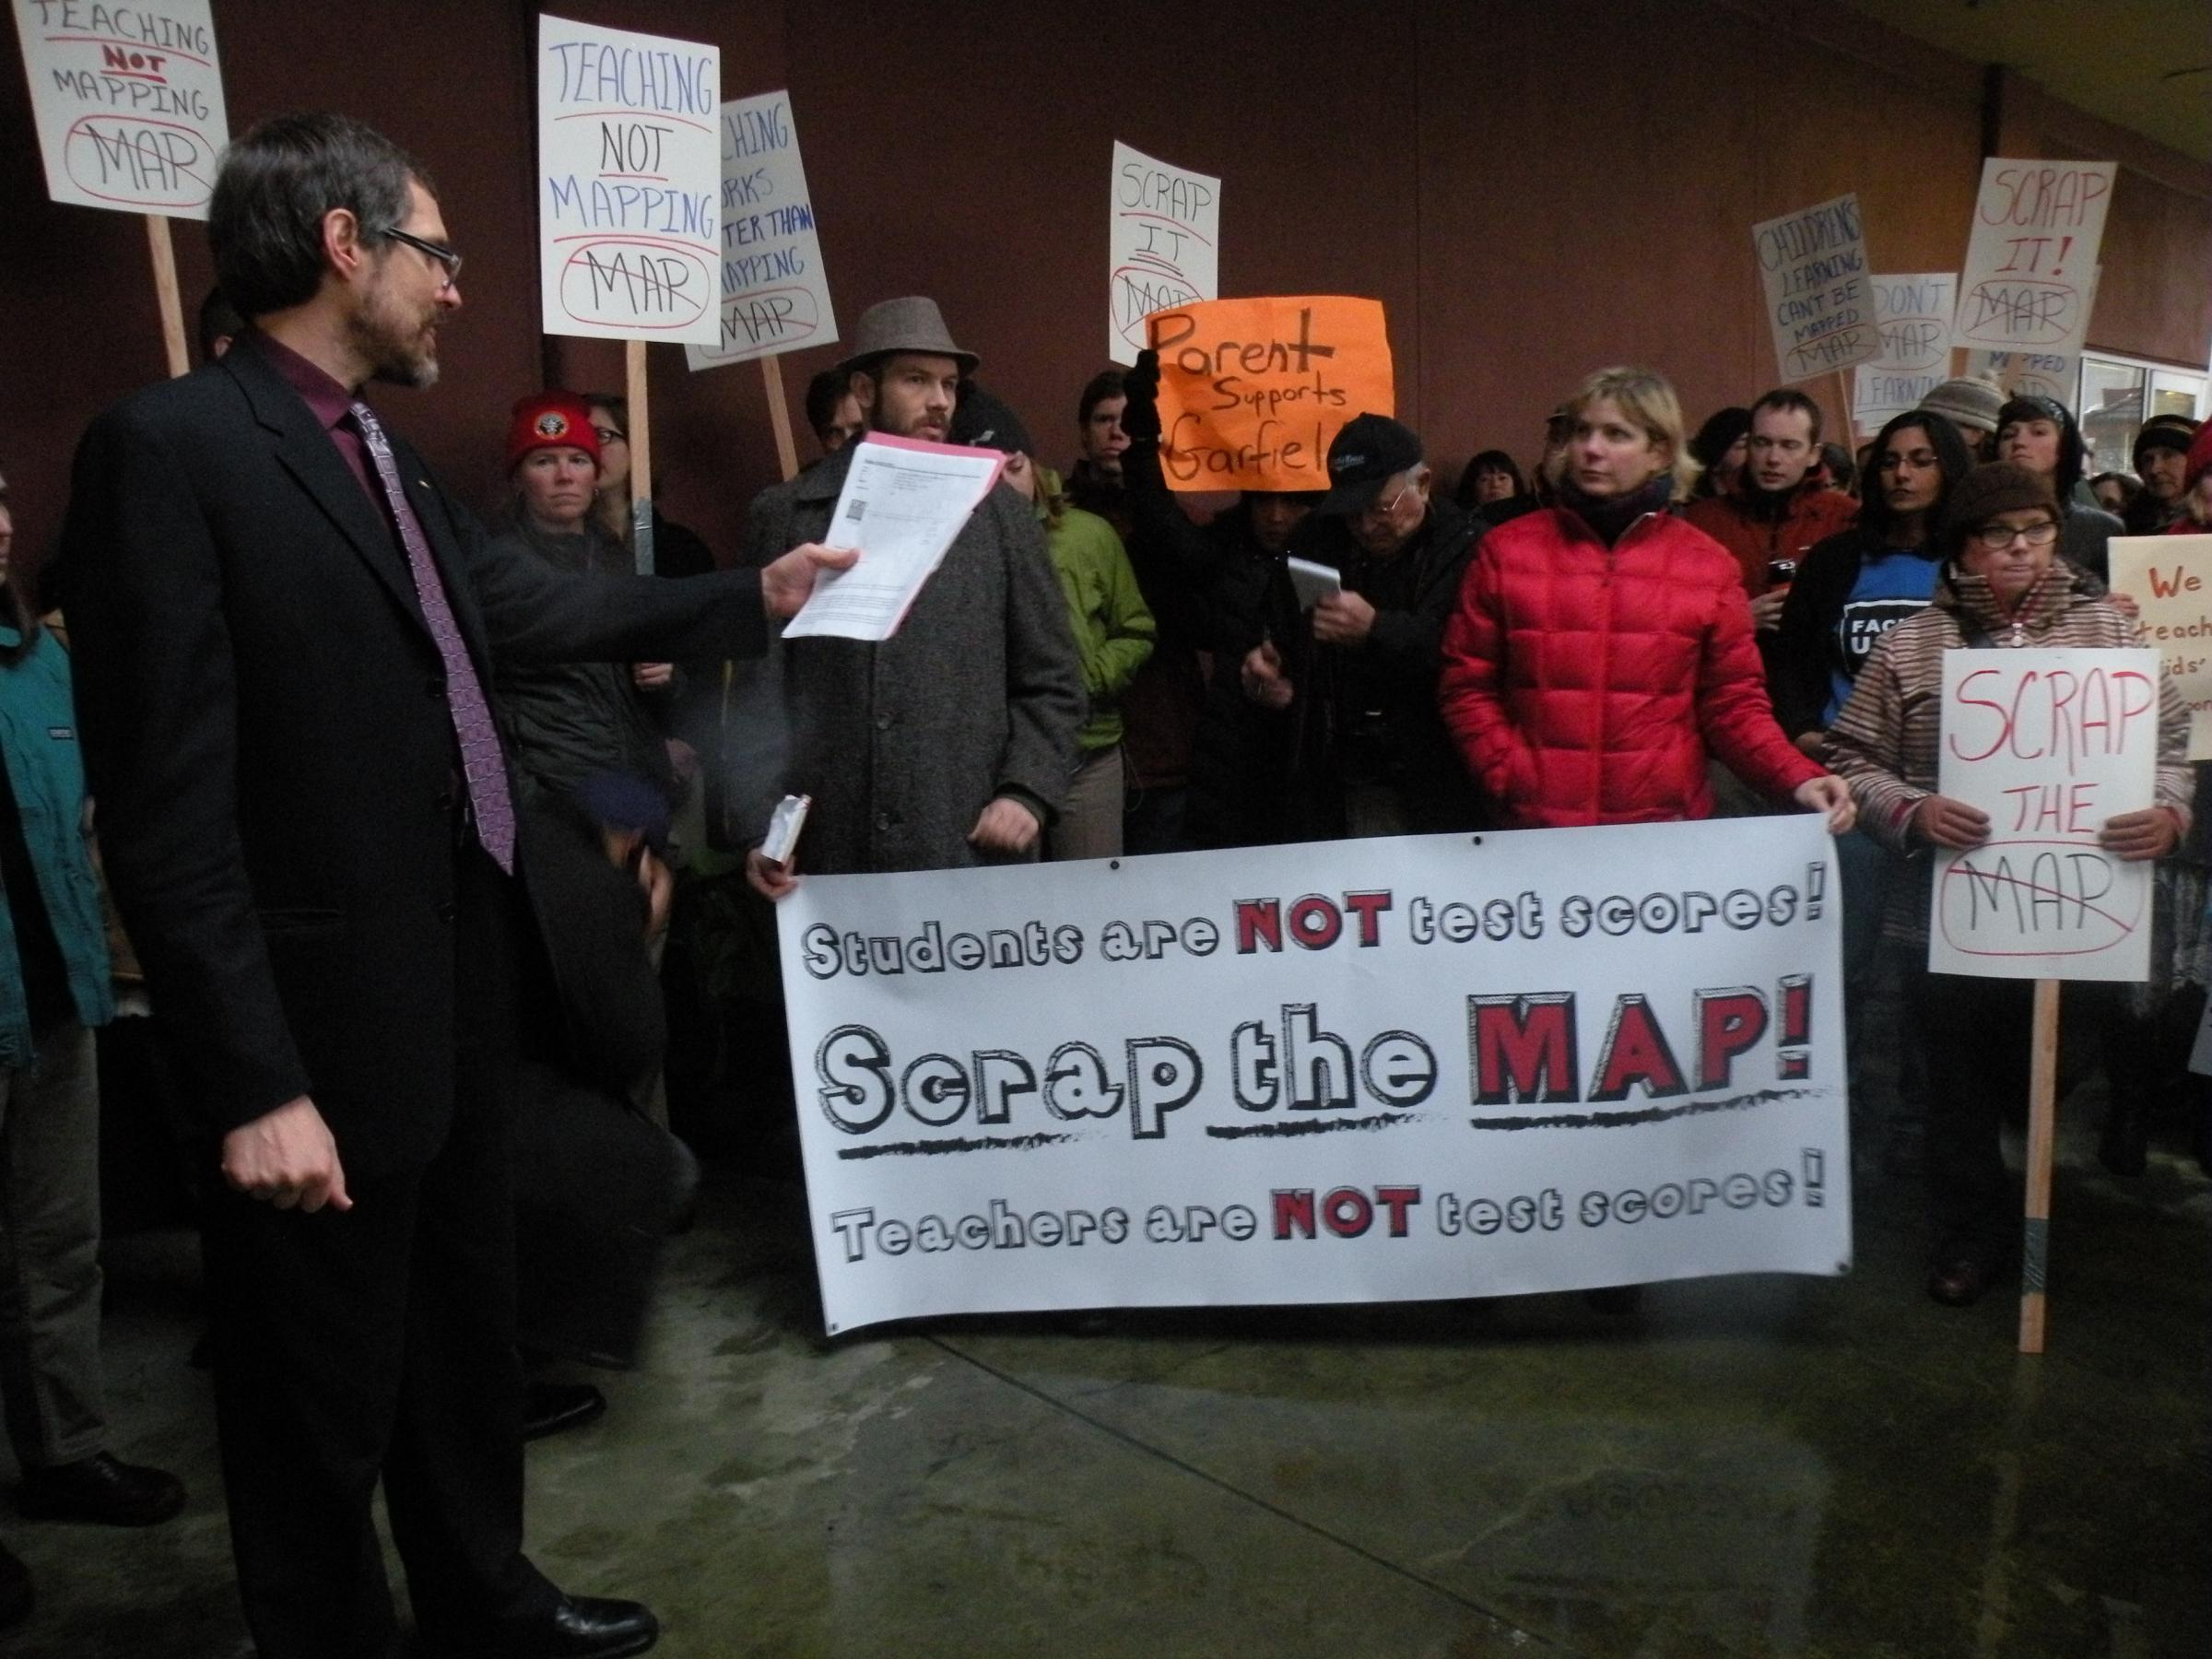 Seattle Public Schools will let high schools scrap the MAP KNKX